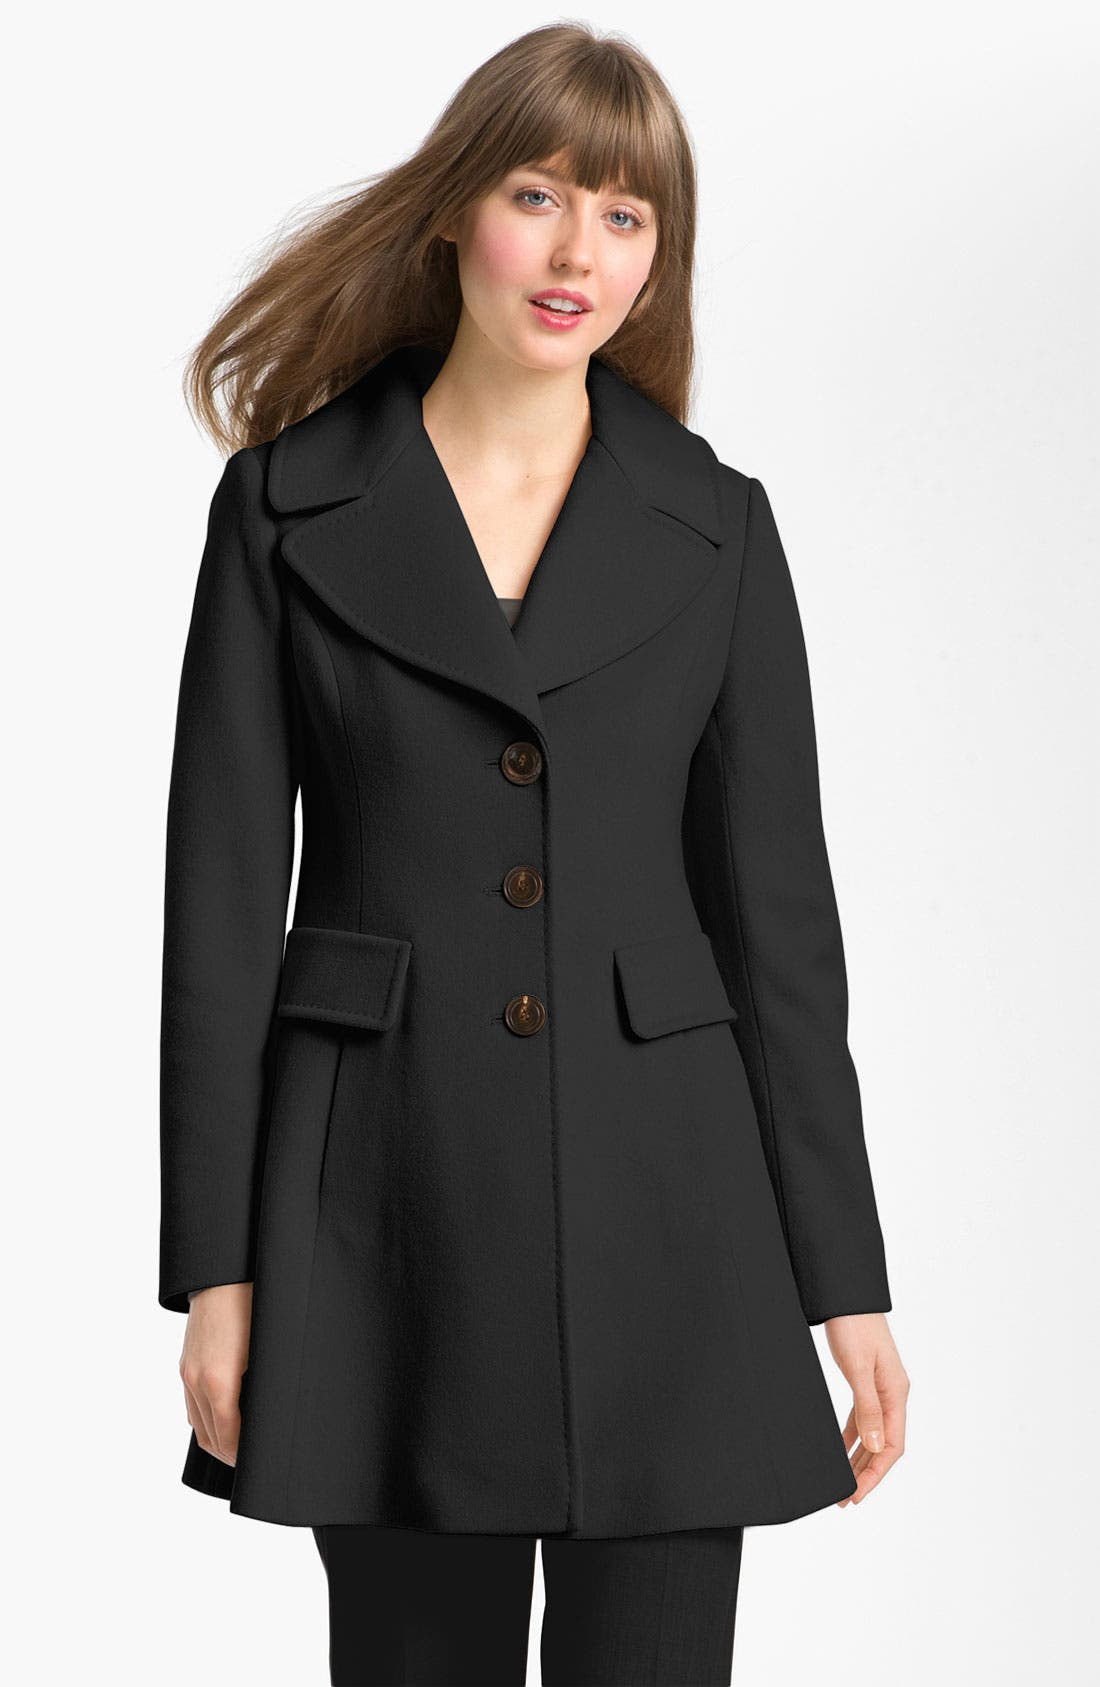 Alternate Image 1 Selected - Fleurette Single Breasted Wool Coat